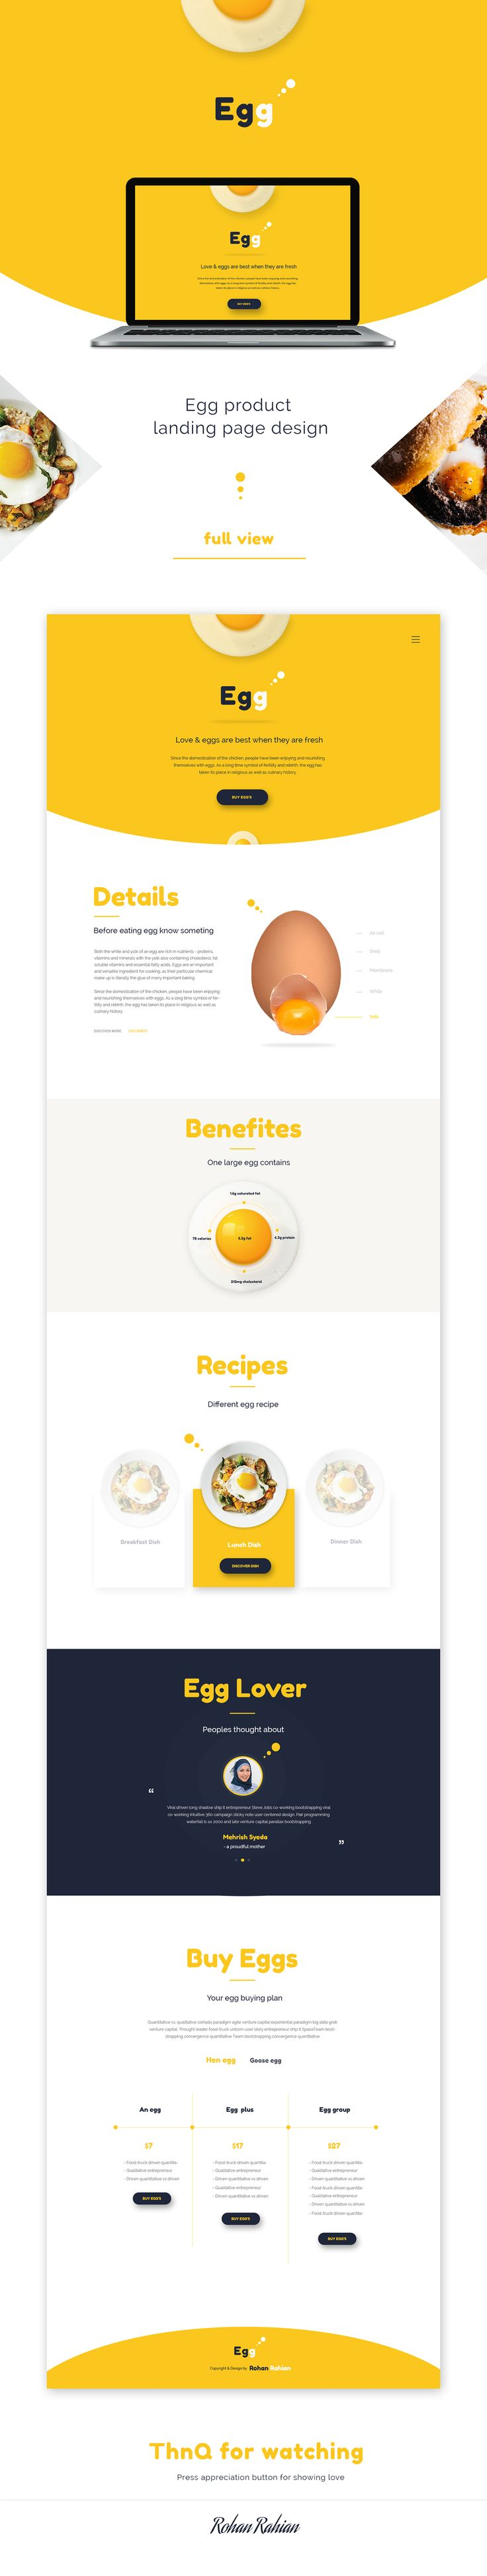 egg - Product landing page on Behance